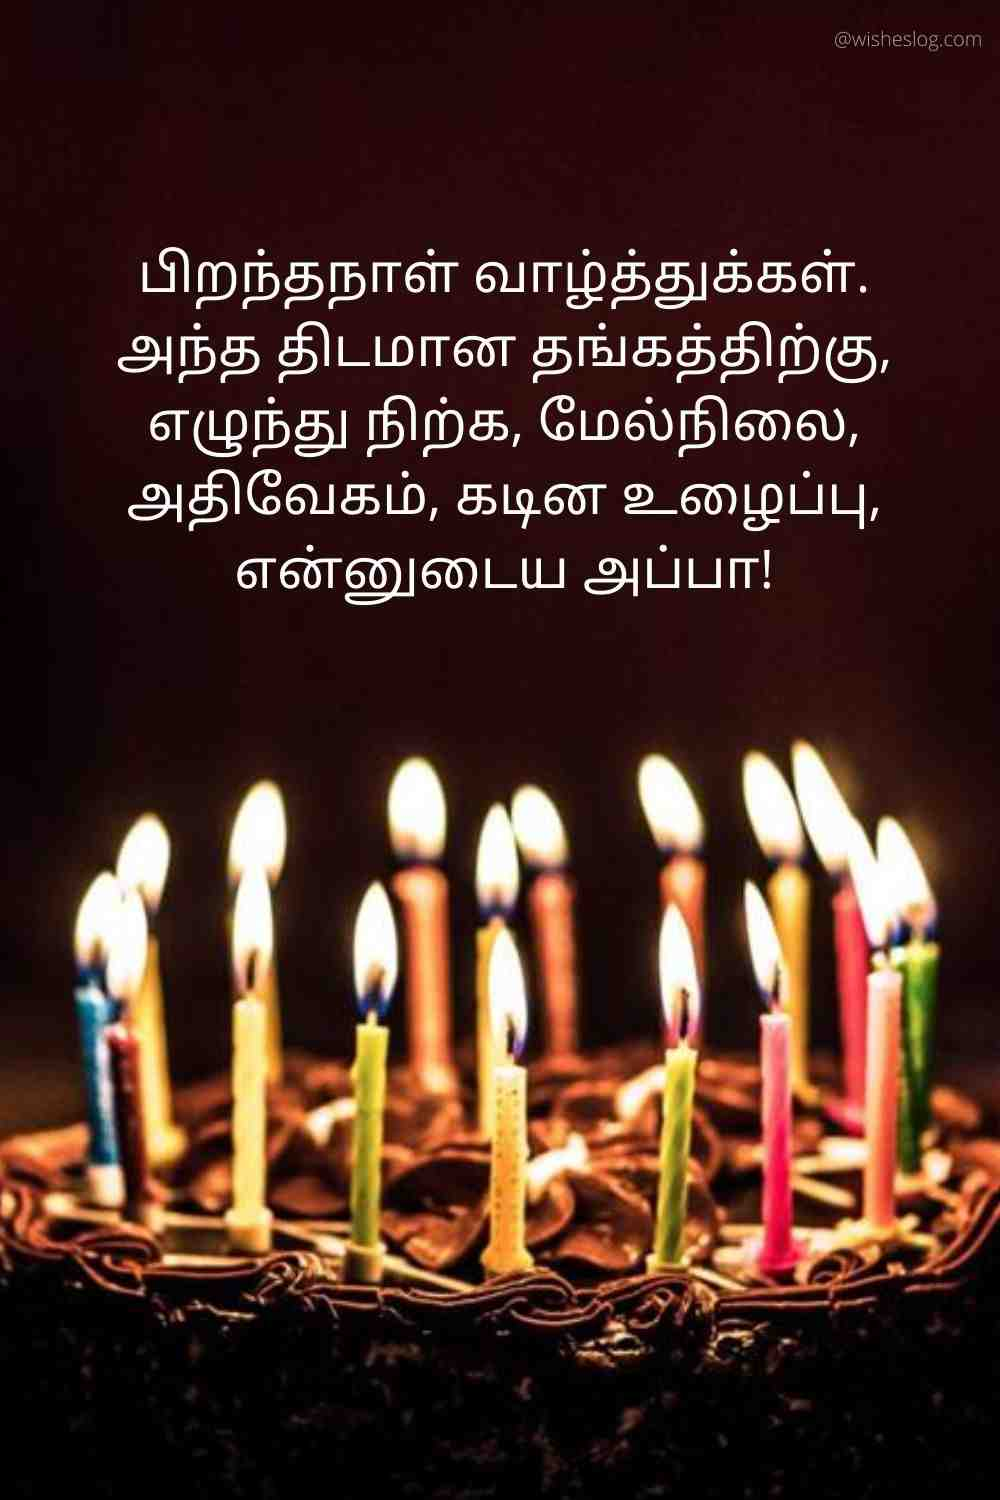 birthday wishes quotes in tamil for father